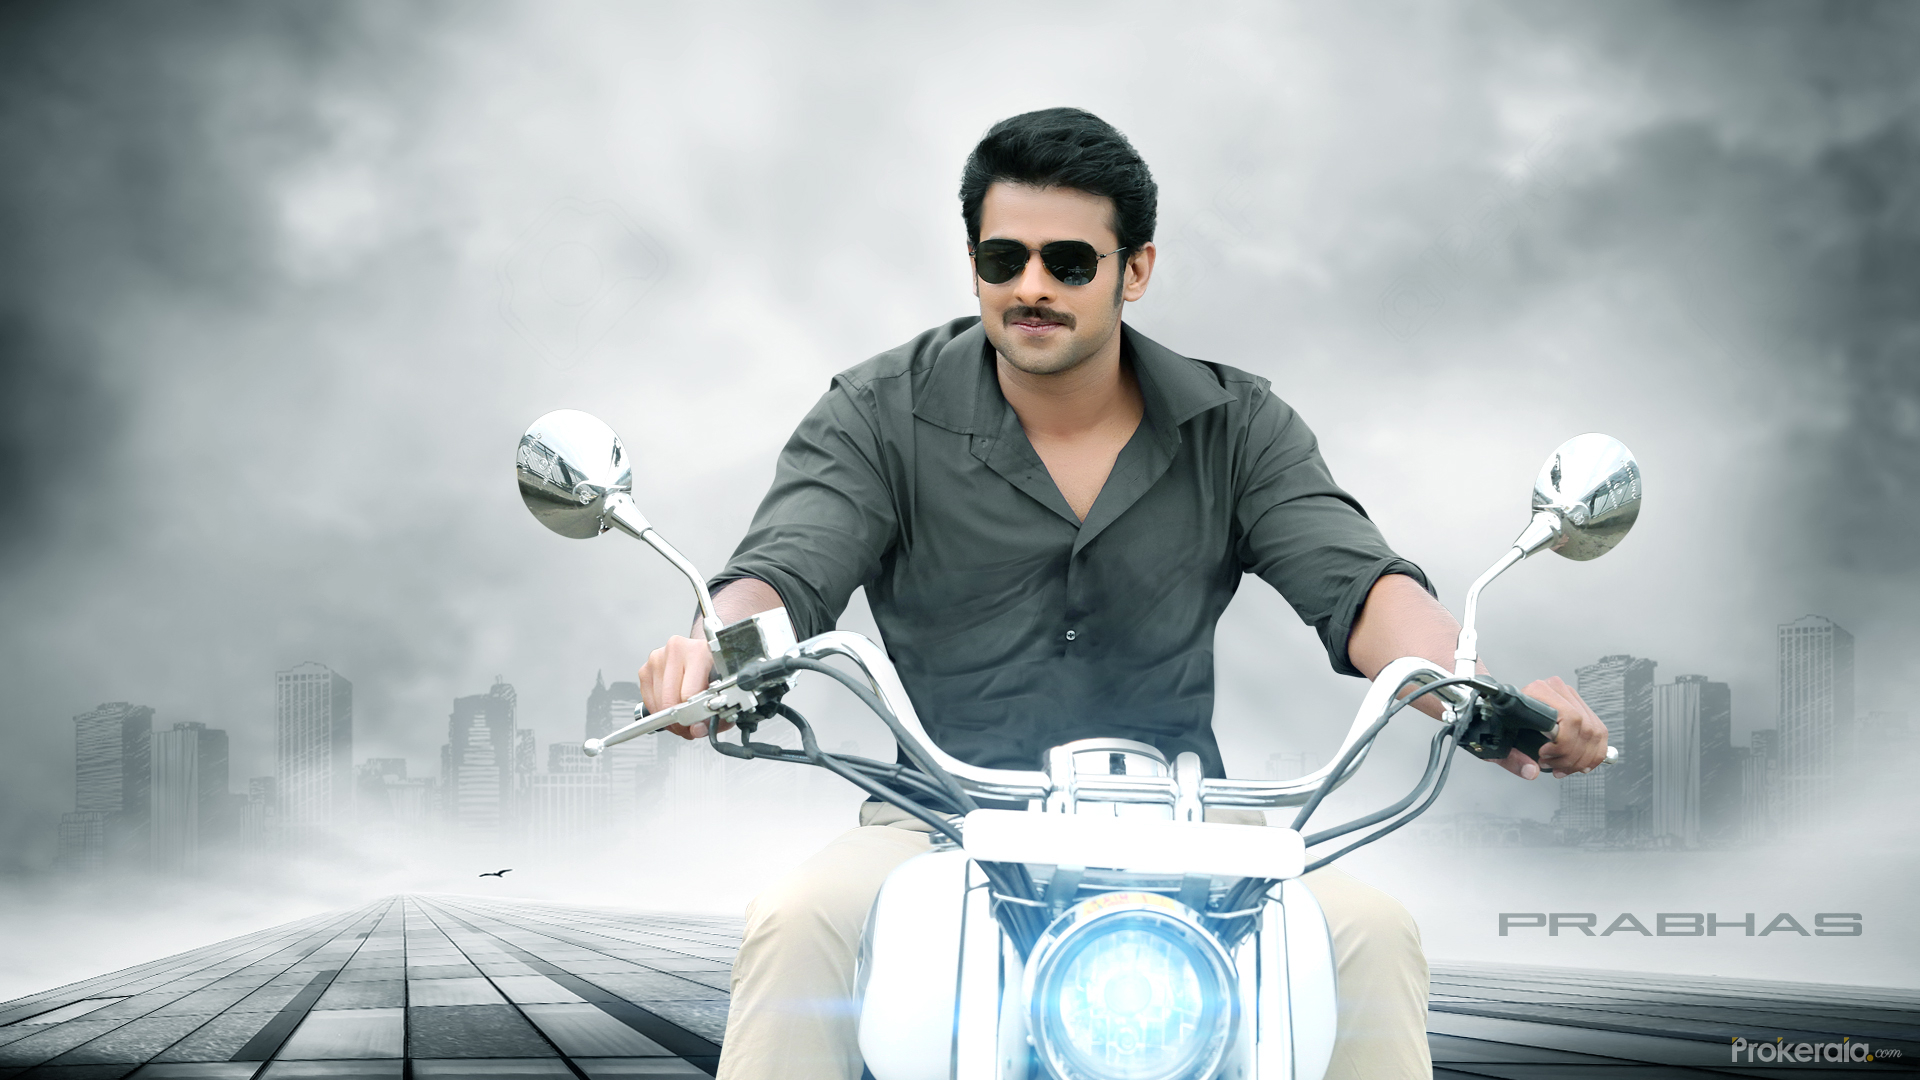 download prabhas wallpaper # 1 | hd prabhas wallpaper # 1